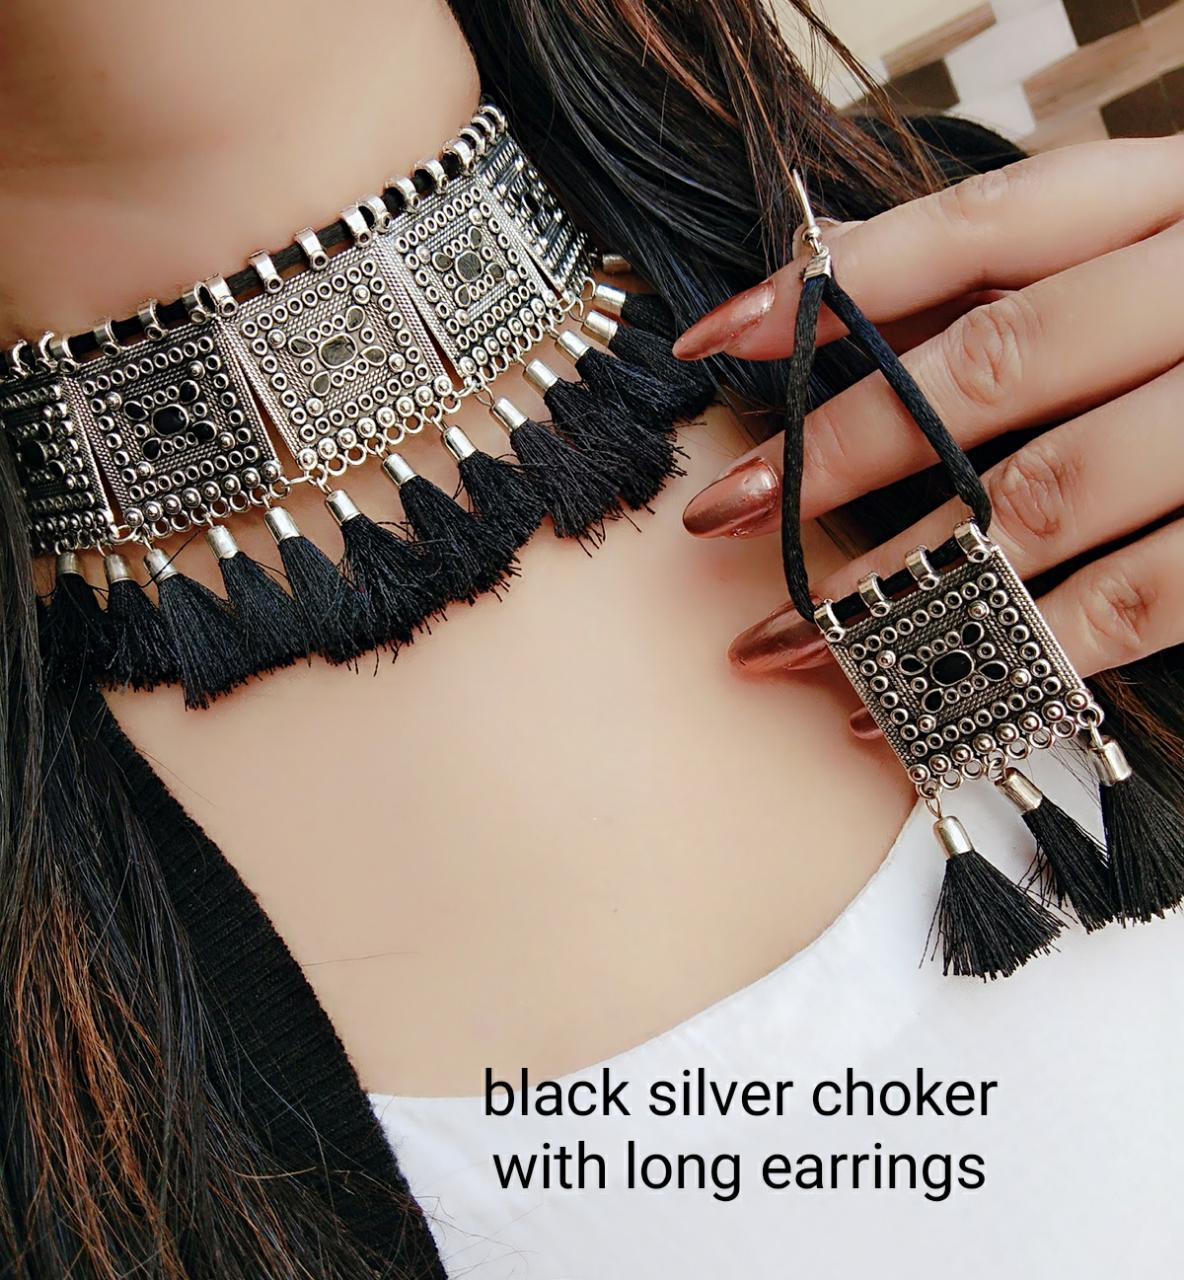 Black Silver Choker With Long Earnings For Women